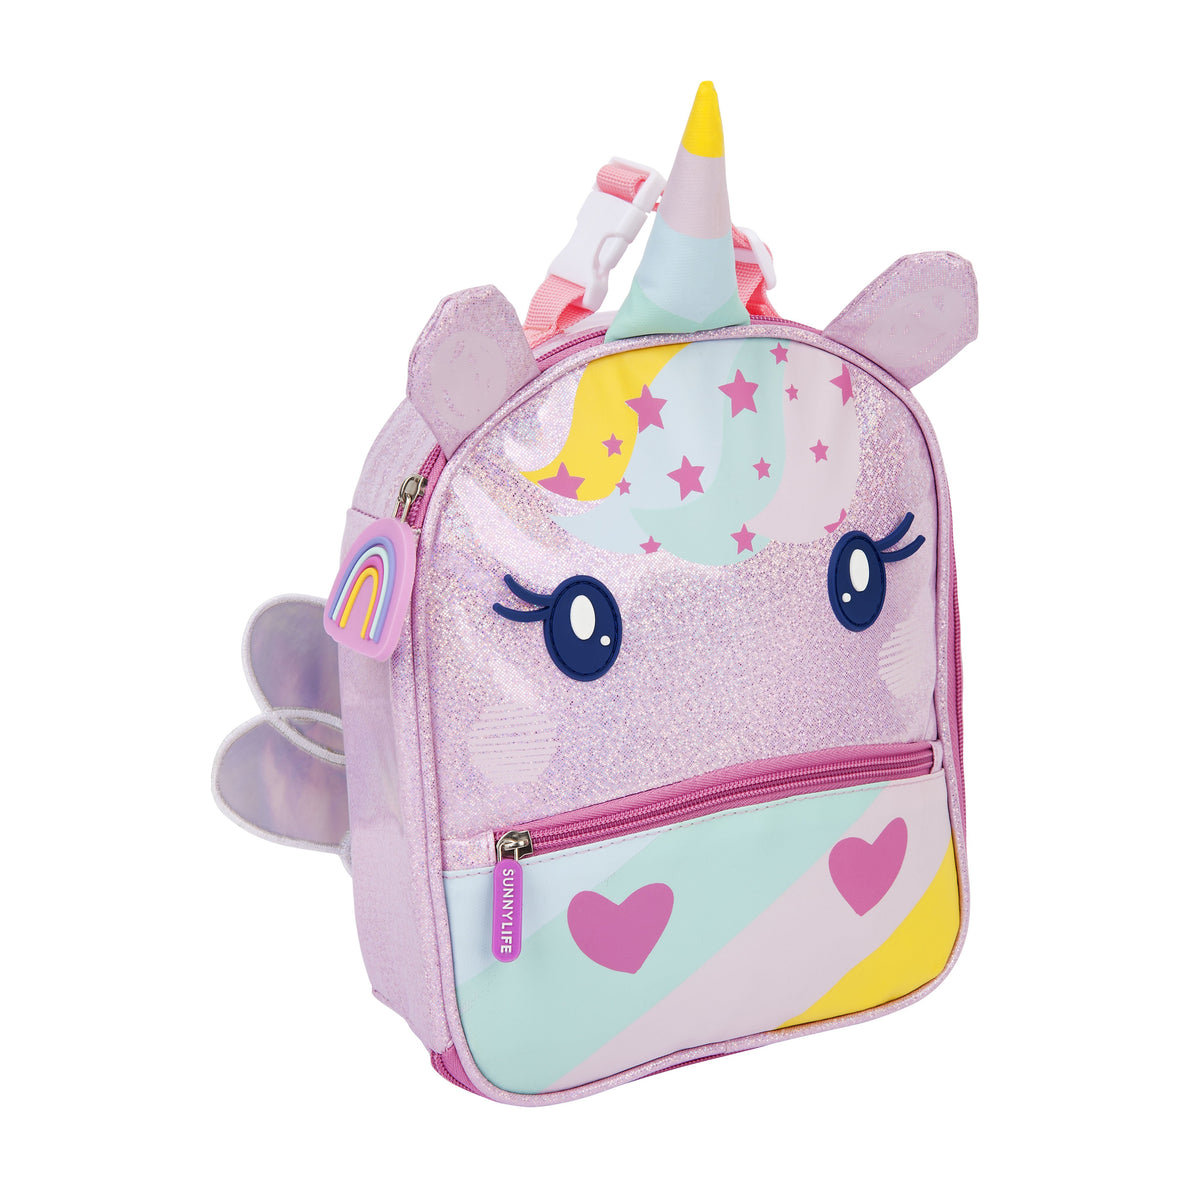 Kids Lunch Bag | Unicorn